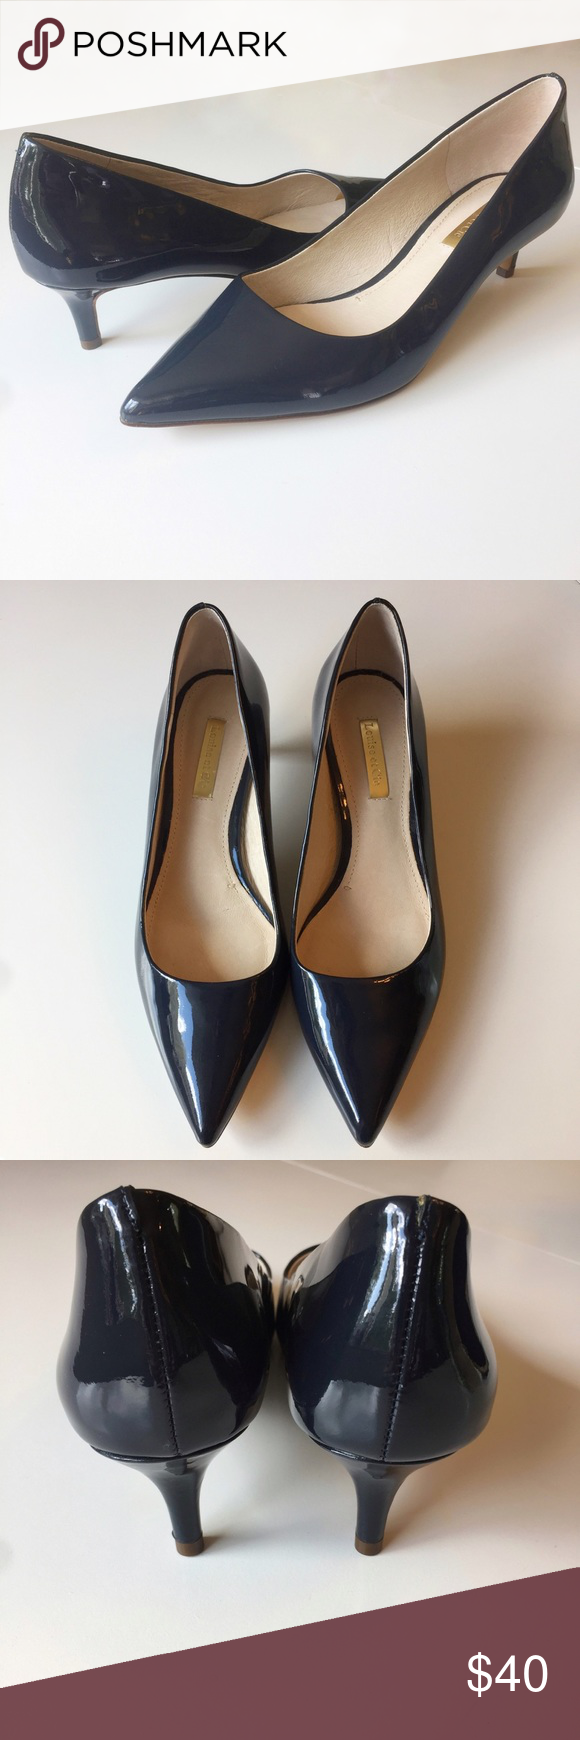 Louise Et Cie Lo Jacoba Patent Leather Kitten Heel Kitten Heels Shoes Women Heels Heels